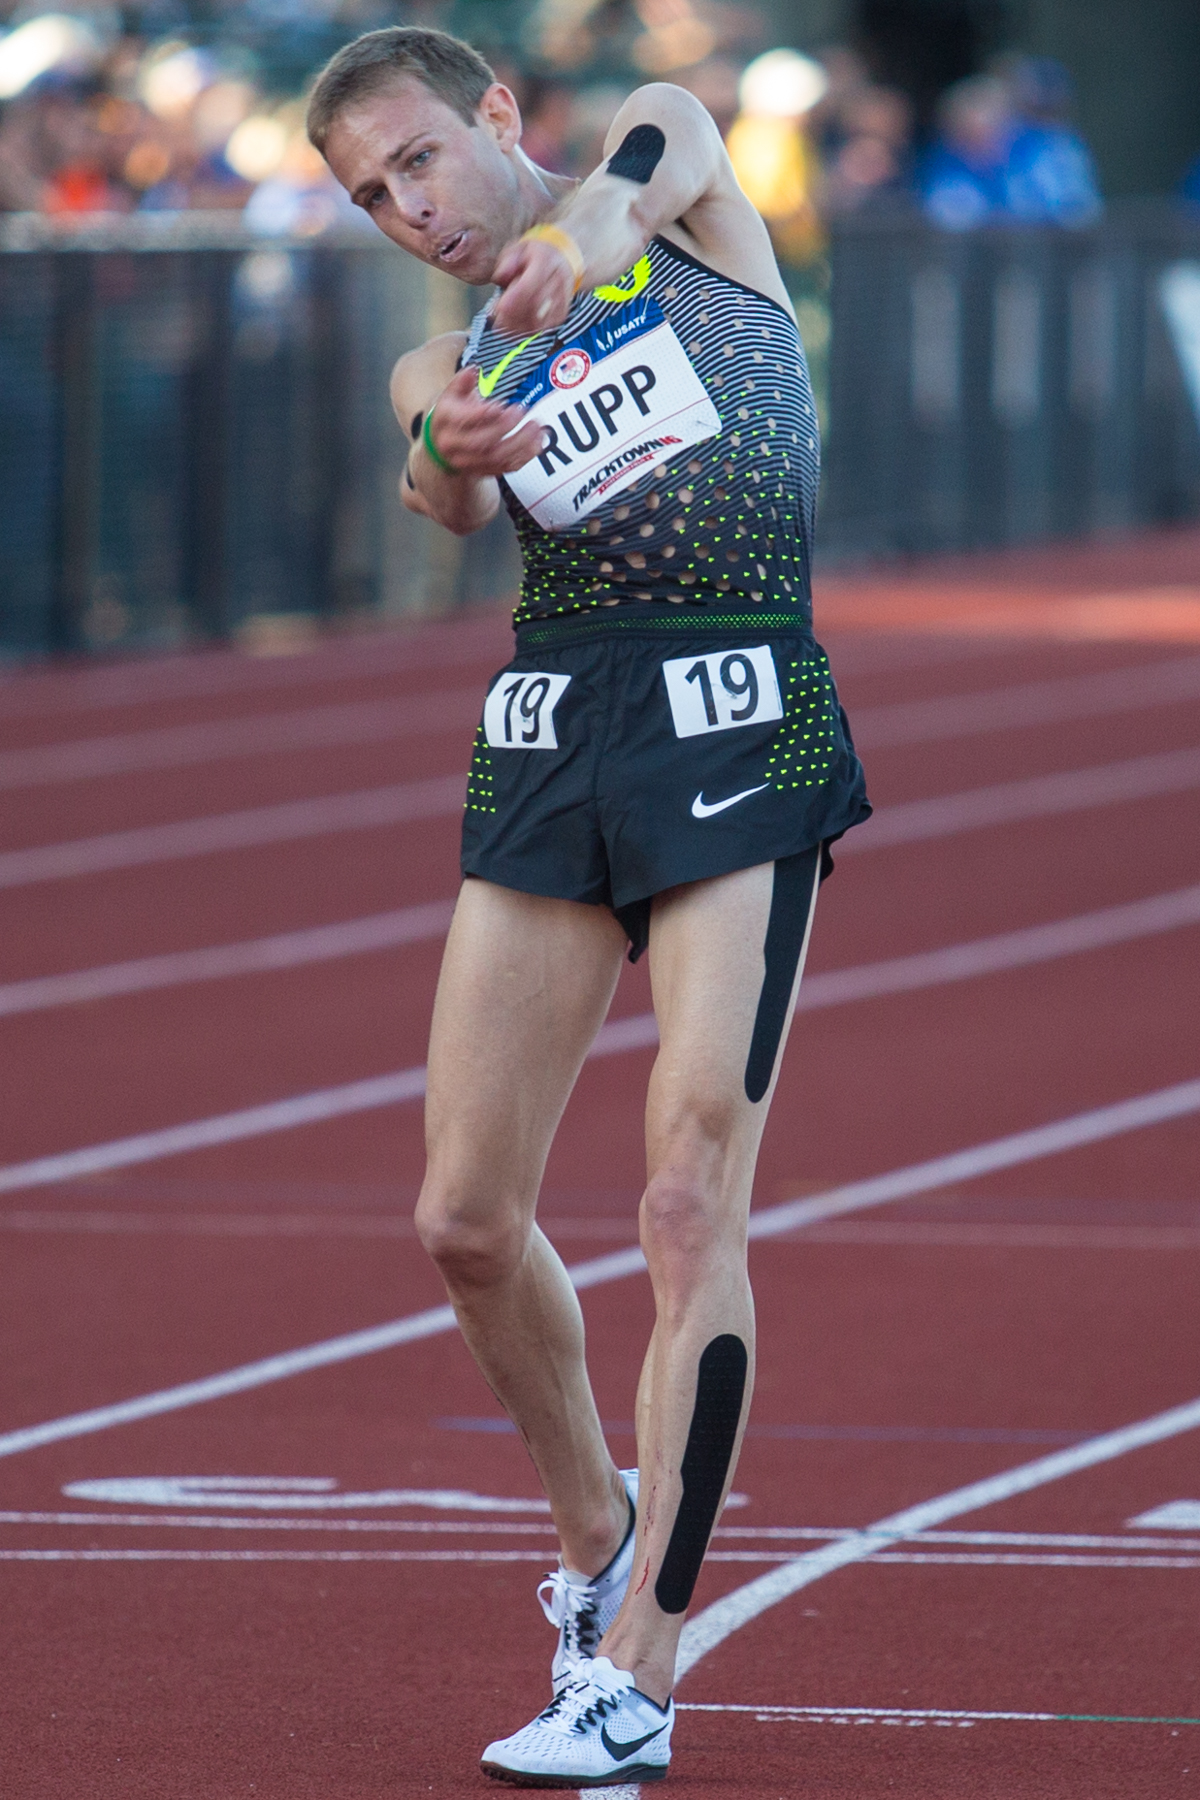 Former Oregon Duck Galen Rupp celebrates after winning the men�s 10,000m. He already made the team in the marathon but plans to double in the 10,000m and possibly the 5,000m as well. Photo by Dillon Vibes